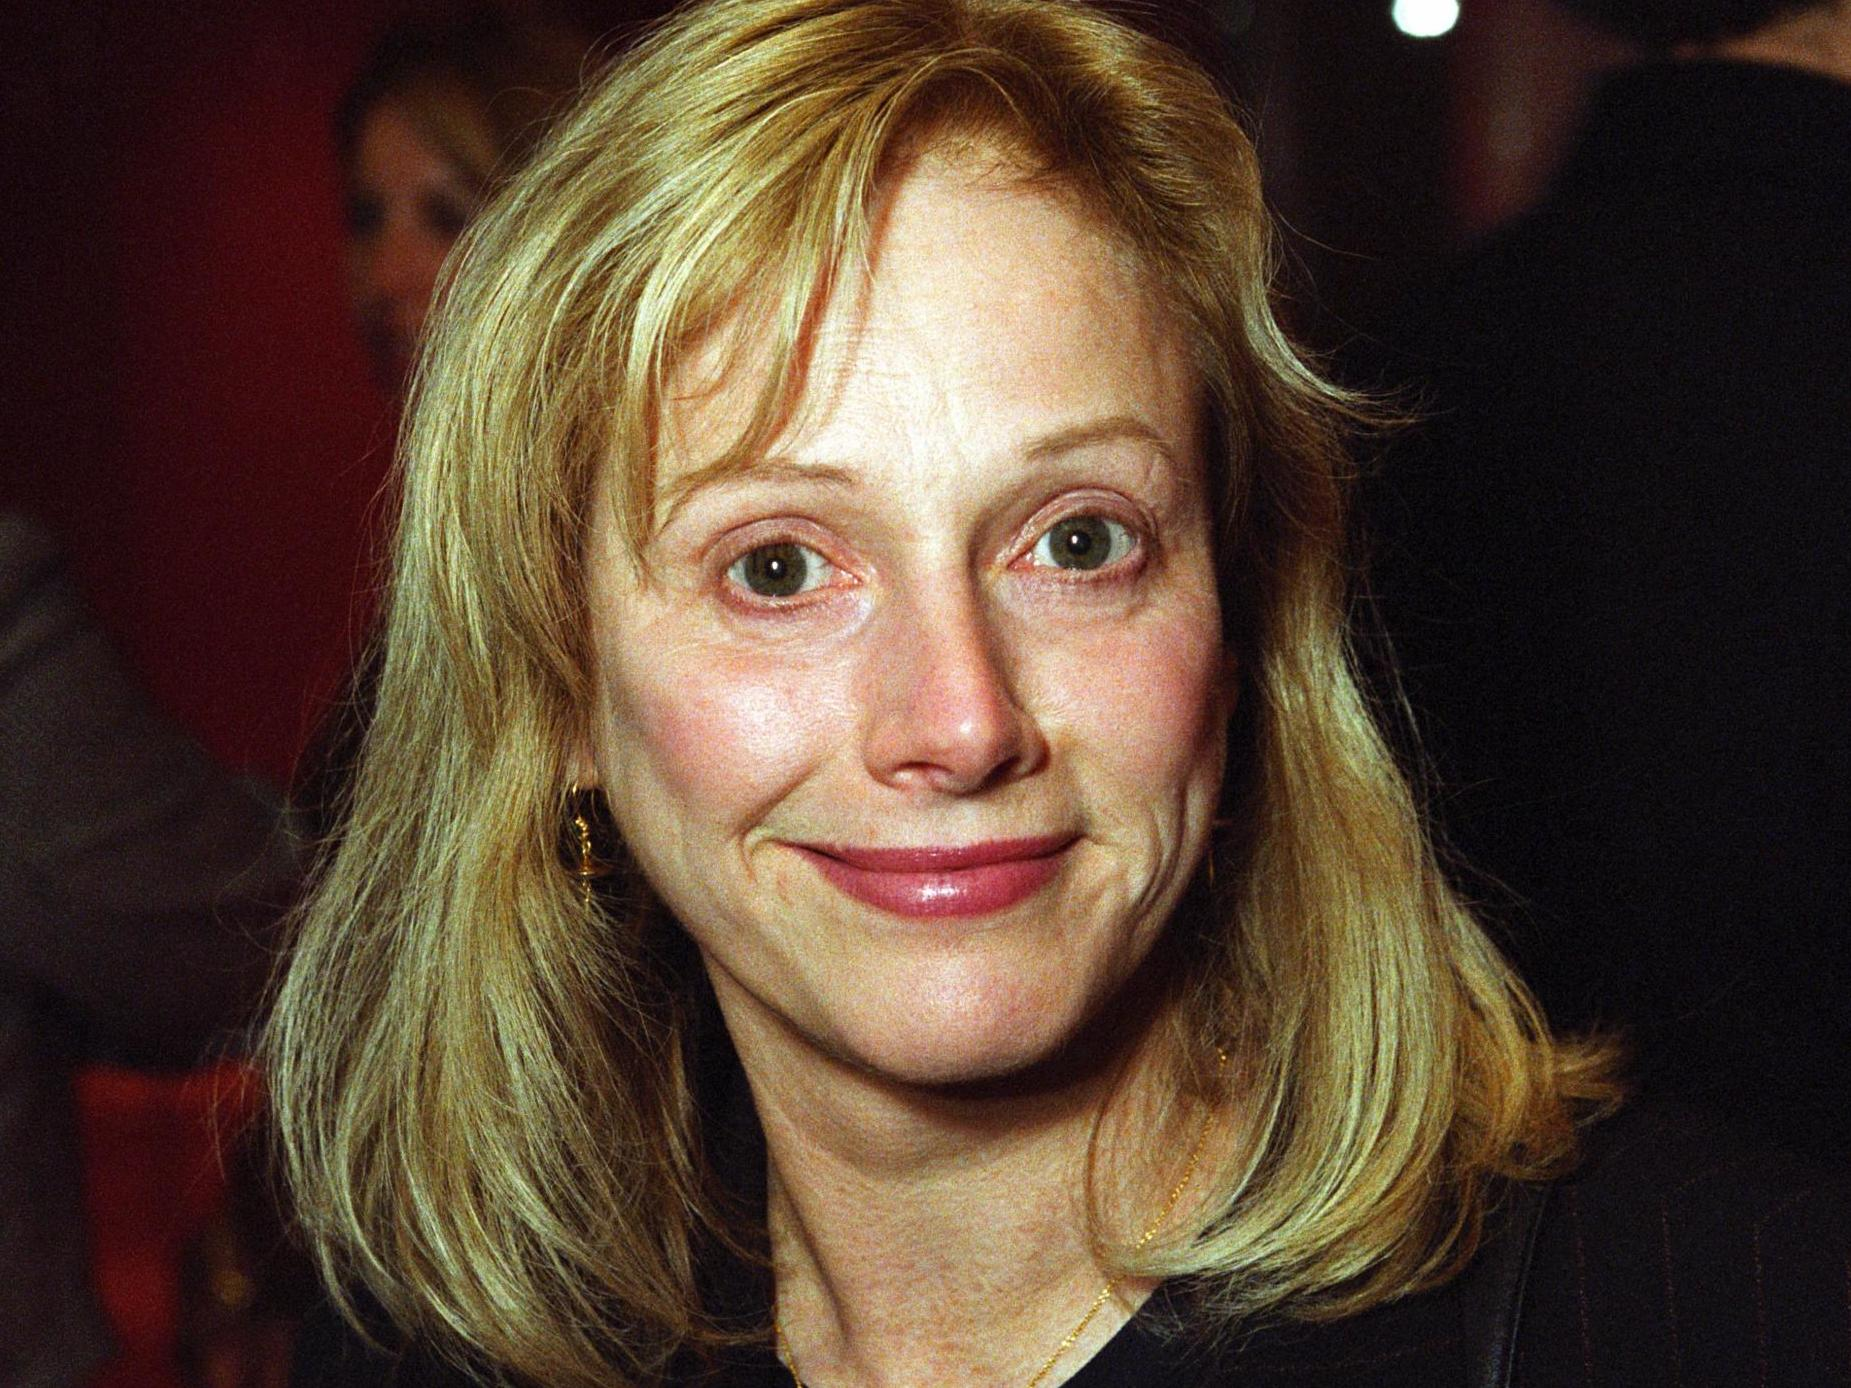 Sondra Locke, Oscar-nominated actor and Clint Eastwood's former partner, has died aged 74